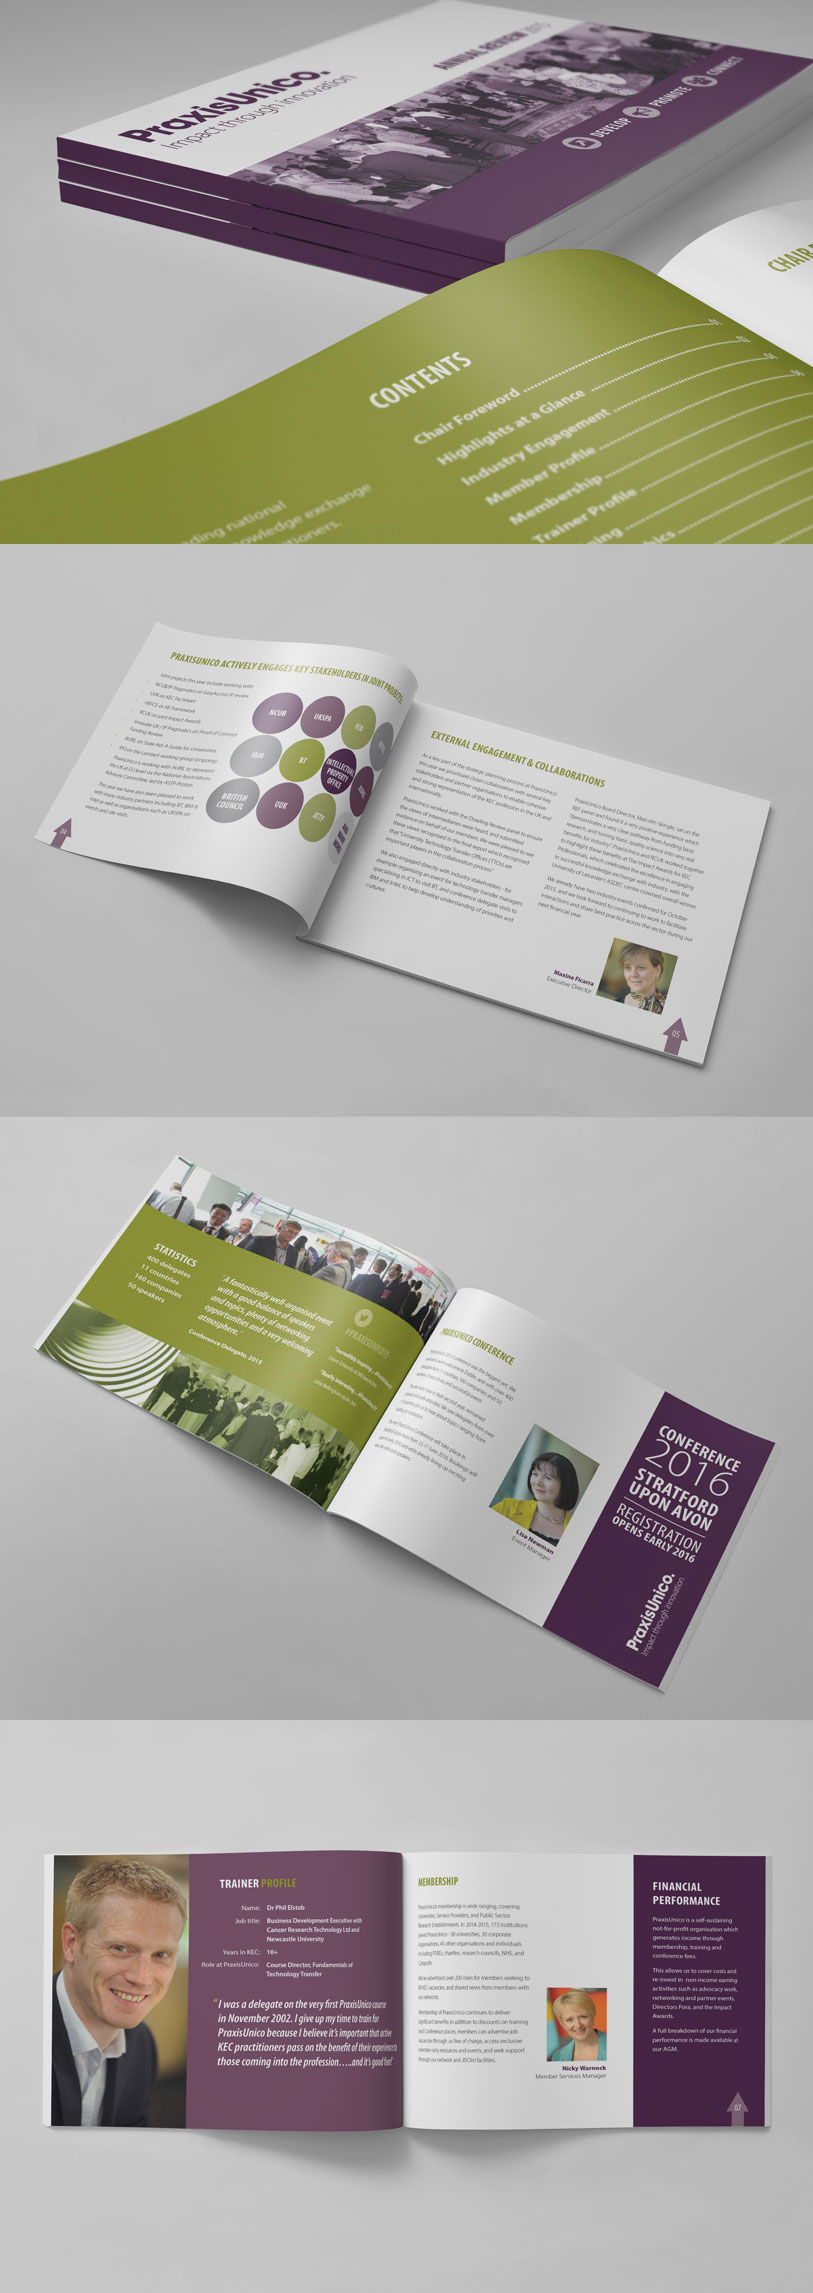 PraxisUnico Annual Review Spread